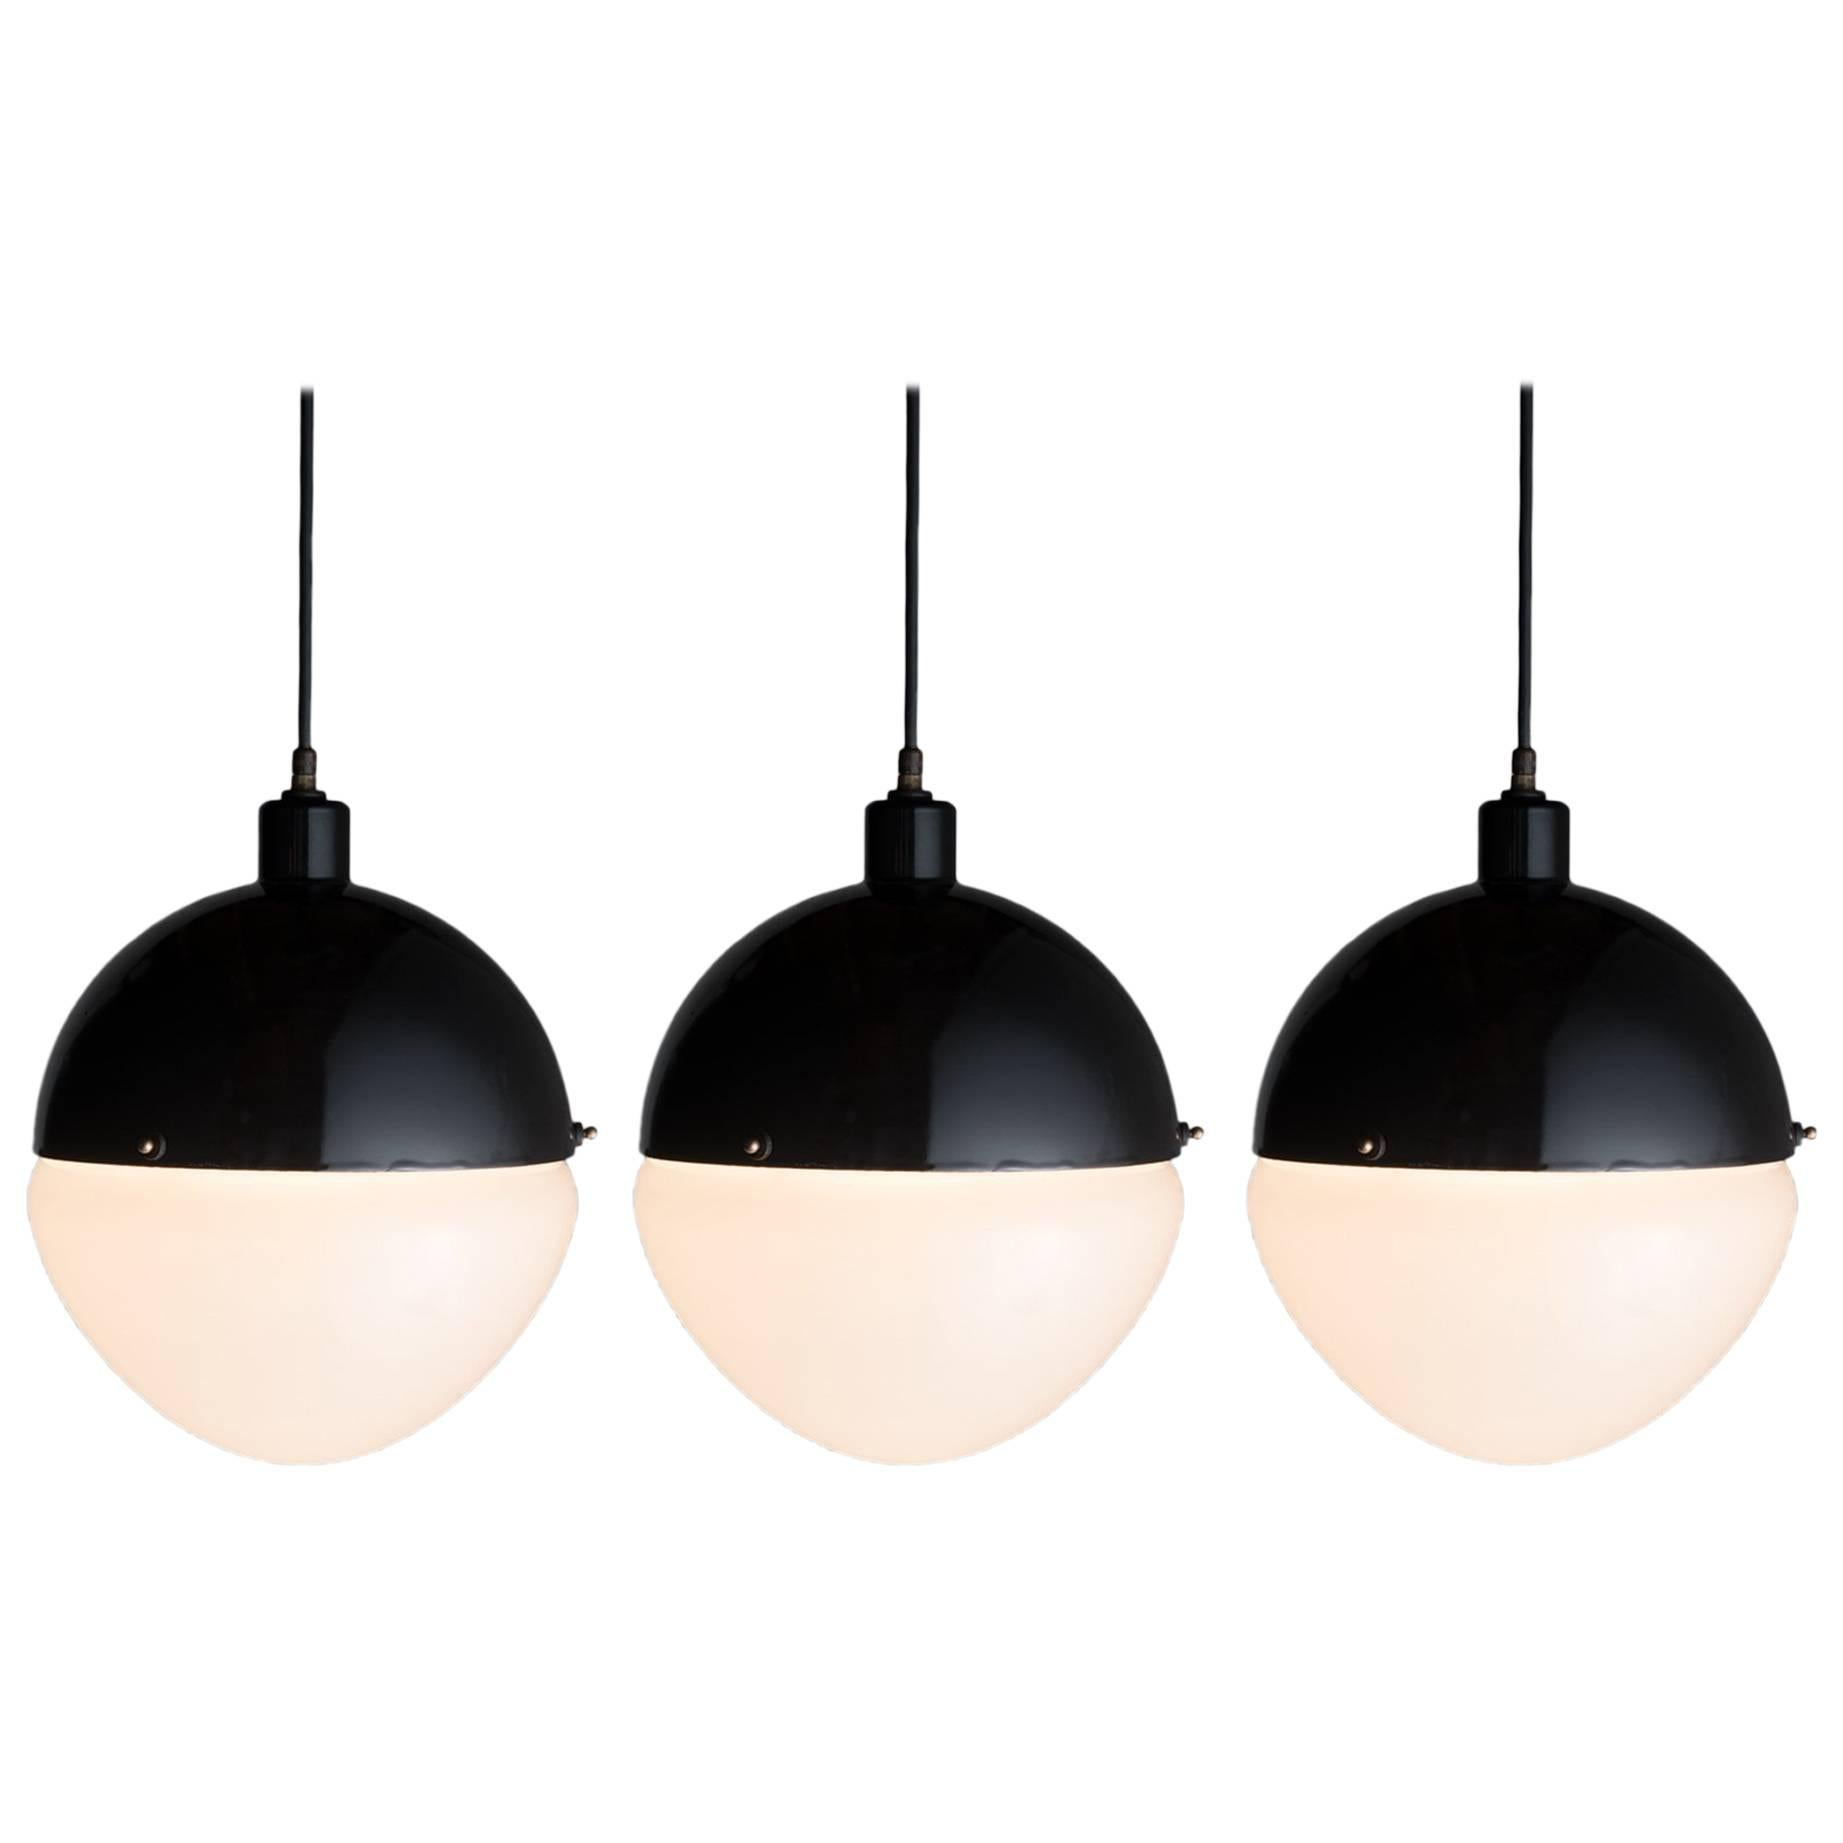 Large Black Metal and Frosted Glass Globe Pendant, Italy, 21st Century